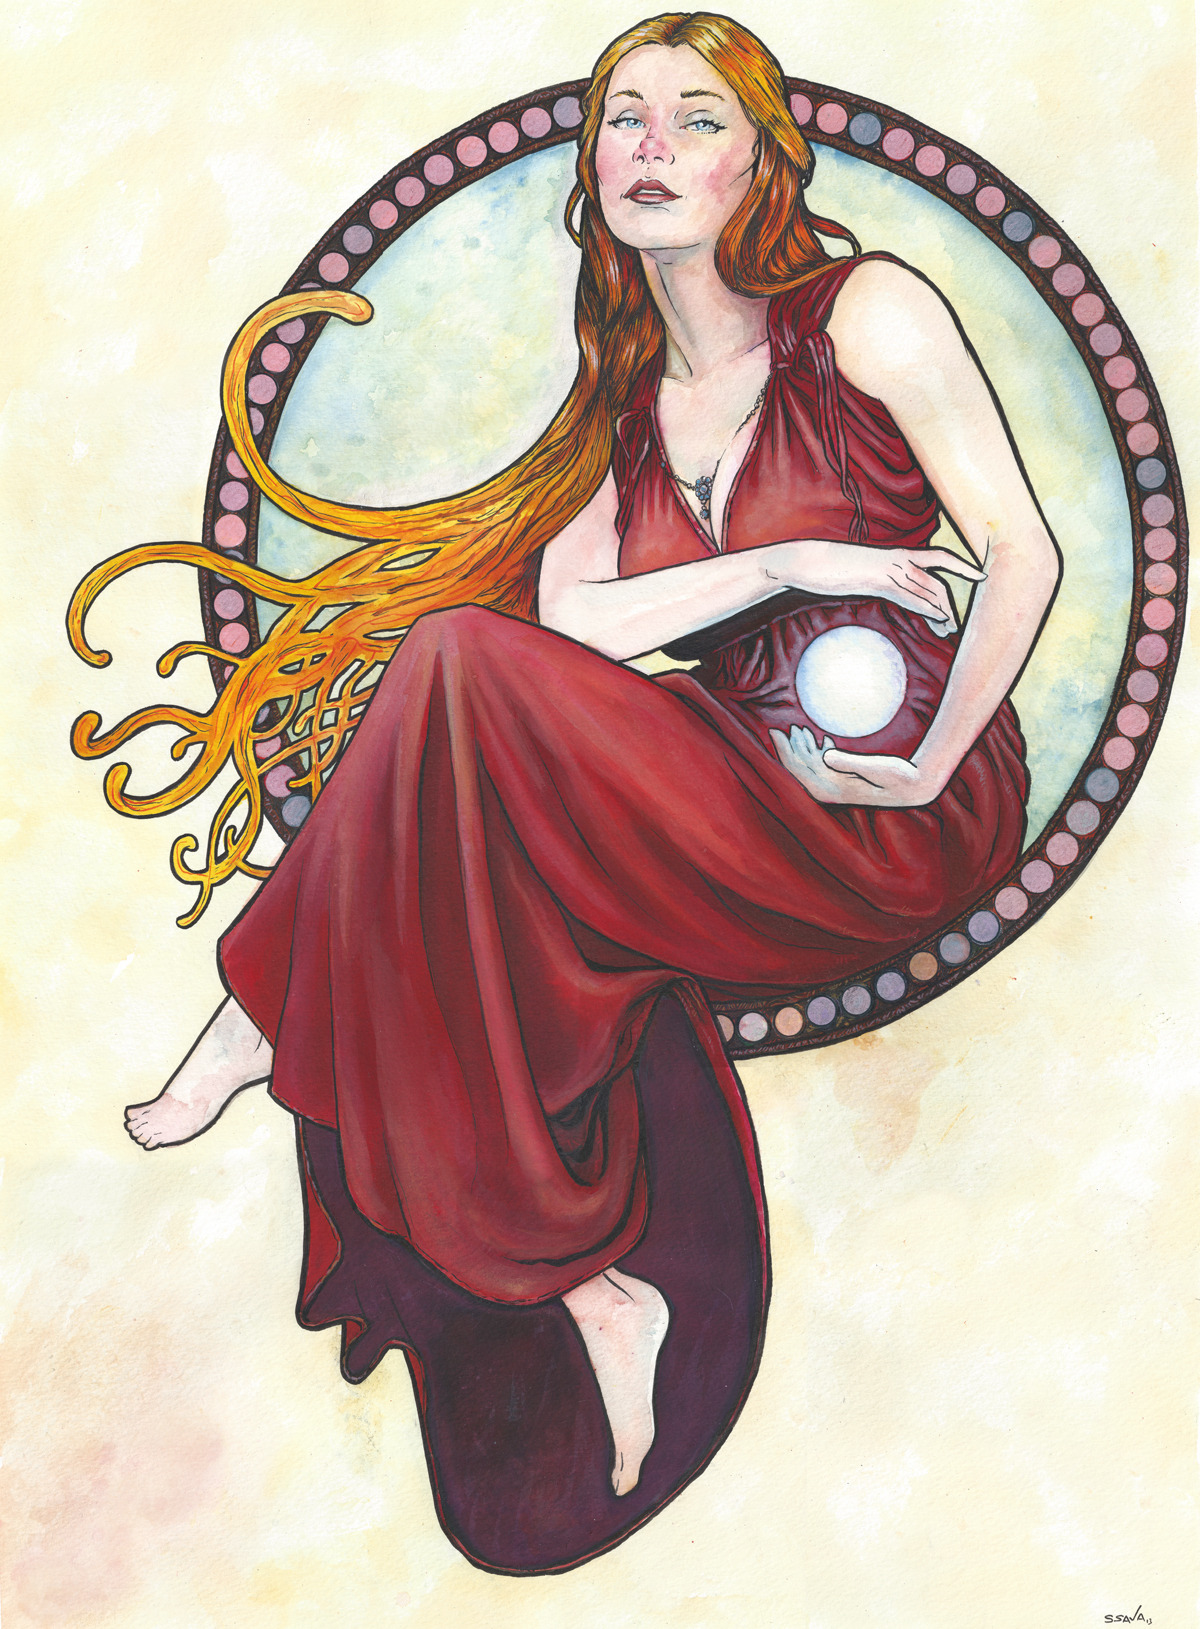 This is the 16th Art Nouveau/Alphonse Mucha inspired watercolor painting in a series I'm producing.THIS PAINTING IS MUCH LARGER THAN PREVIOUS ONES!The painting is on 18x24 inch Strathmore Cold Press watercolor paper. Done in watercolors and ink.Photo reference/inspiration from here…http://kuoma-stock.deviantart.com/art/Art-Nouveau-Winter-14-364847221Original paintings can be purchased here…http://www.etsy.com/shop/ScottChristianSava?section_id=11821287and Limited Edition Prints can be purchased here…http://www.etsy.com/shop/ScottChristianSava?section_id=11821297Thanks for looking!Scott